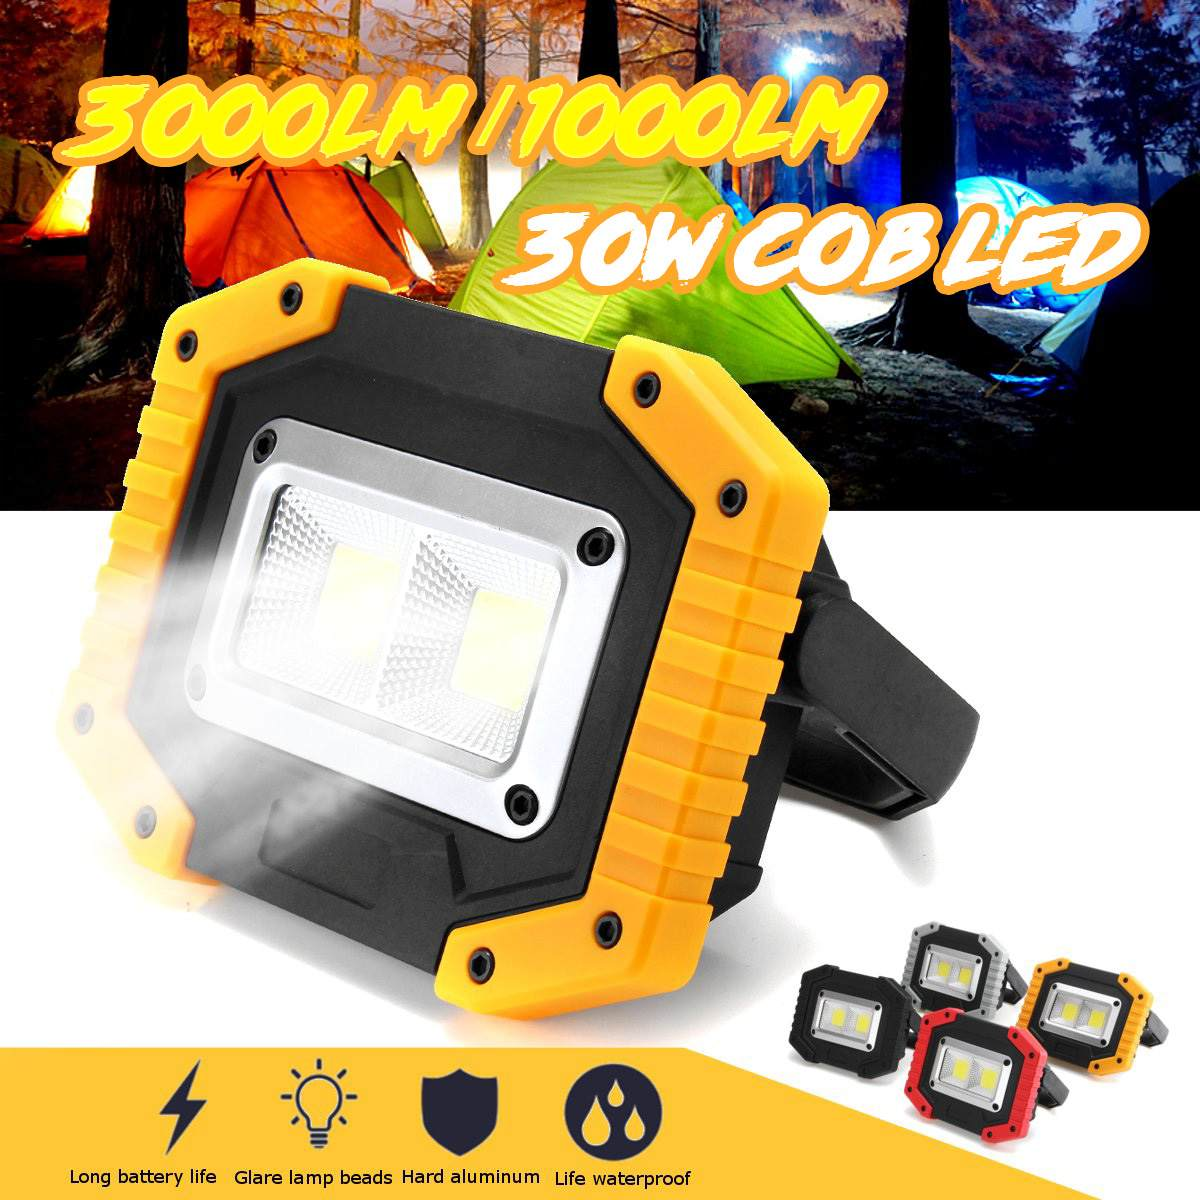 30W 2 COB LED Portable Spotlight Rechargeable Outdoor Working Light Hunting Camping Lamp Floodlight Searchlight 18650 Battery